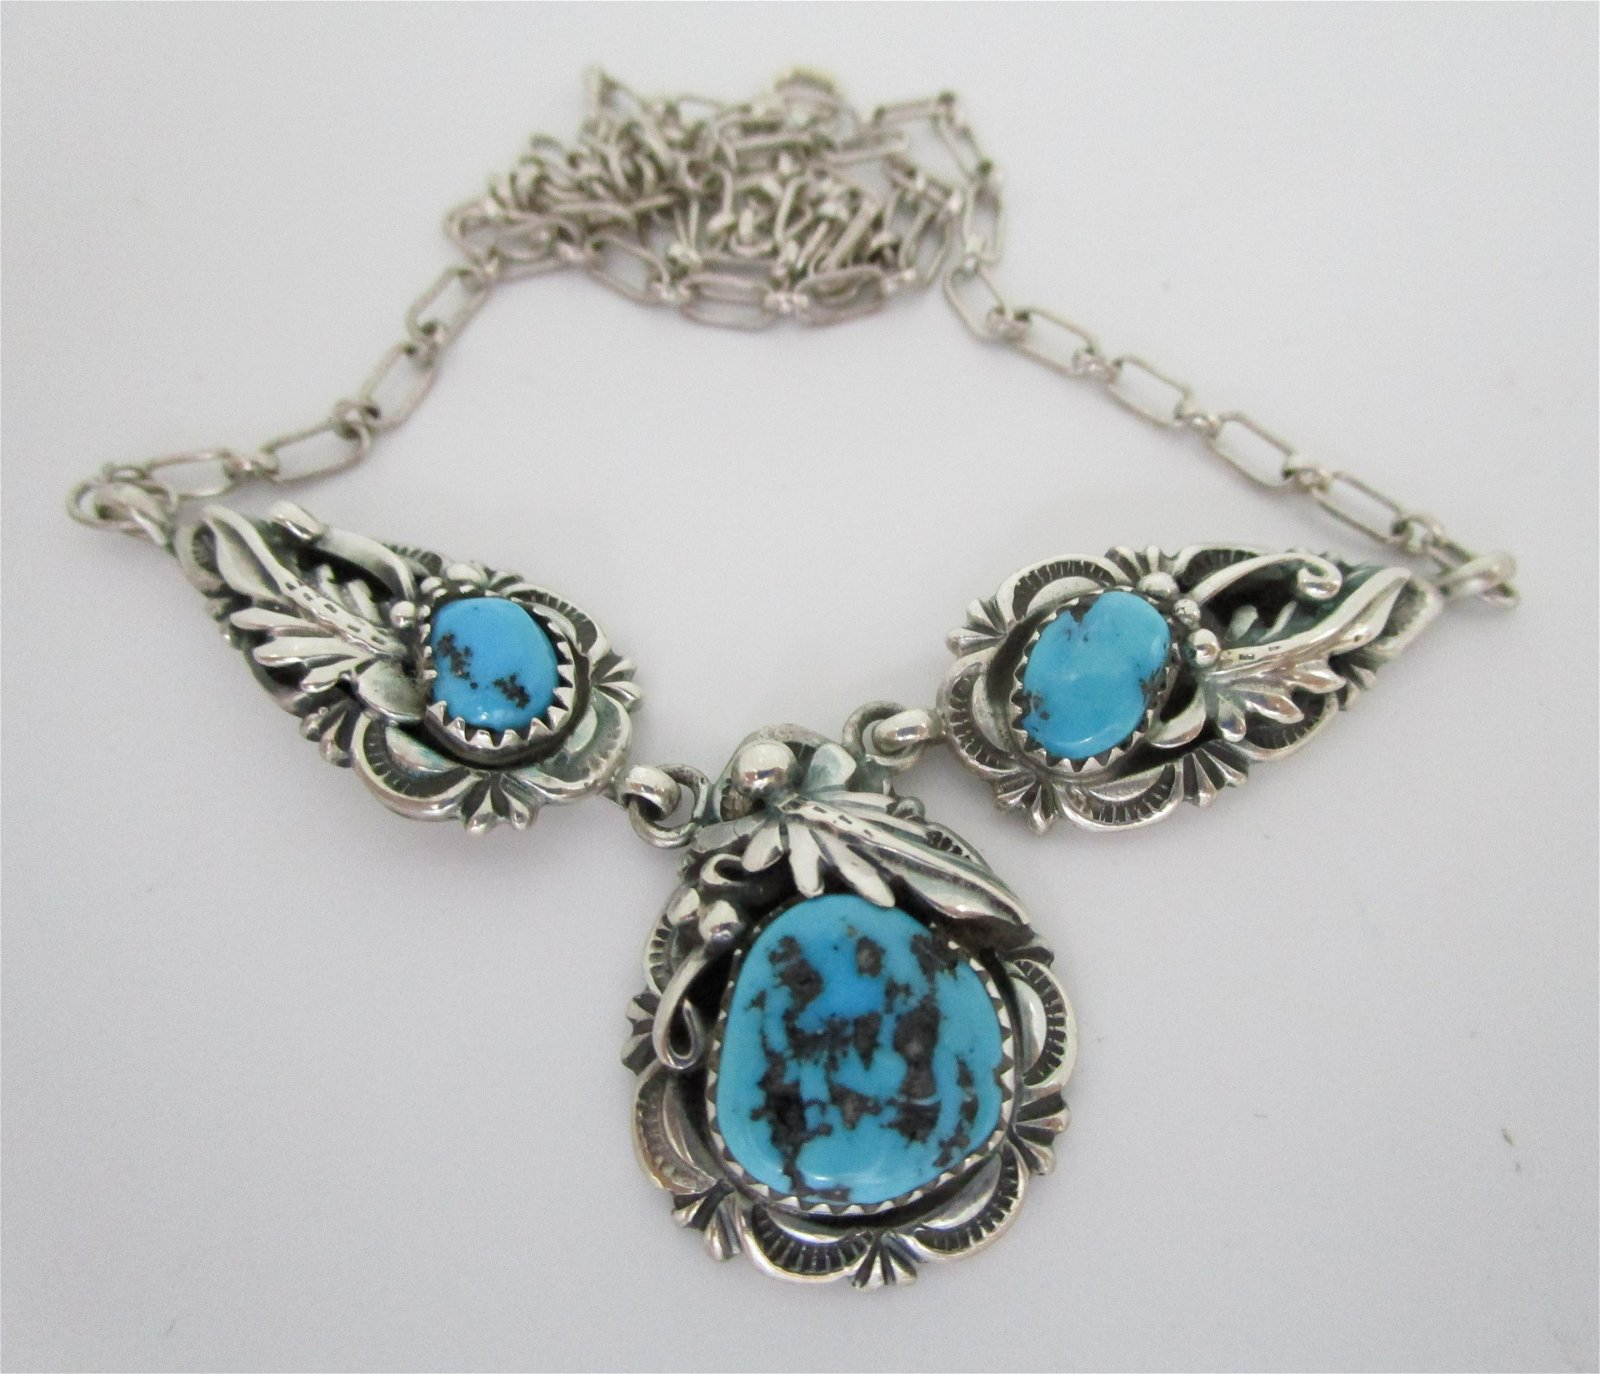 FAB TURQUOISE NECKLACE STERLING SILVER SQUASH